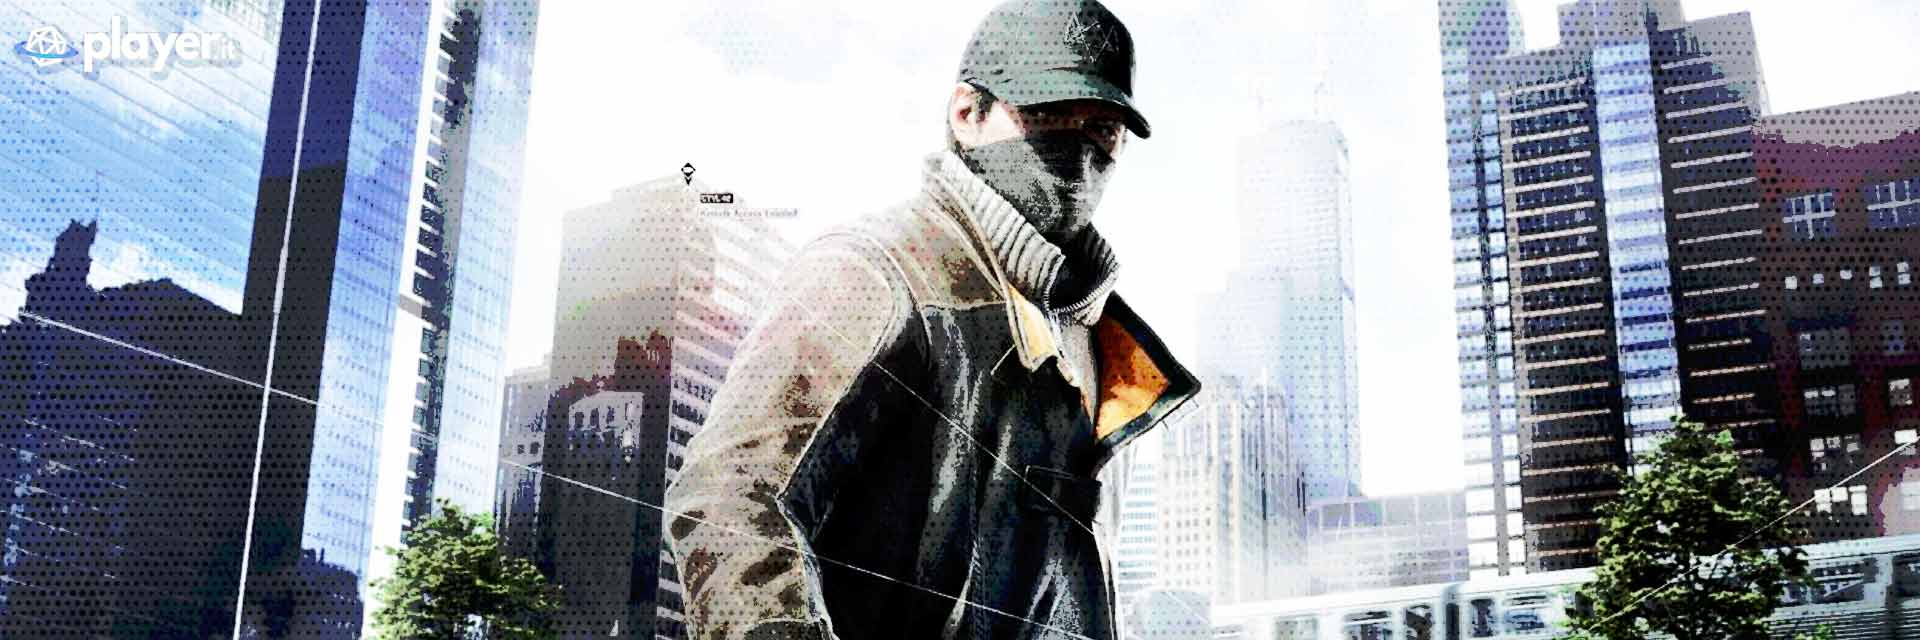 WATCH dogs wallpaper in hd